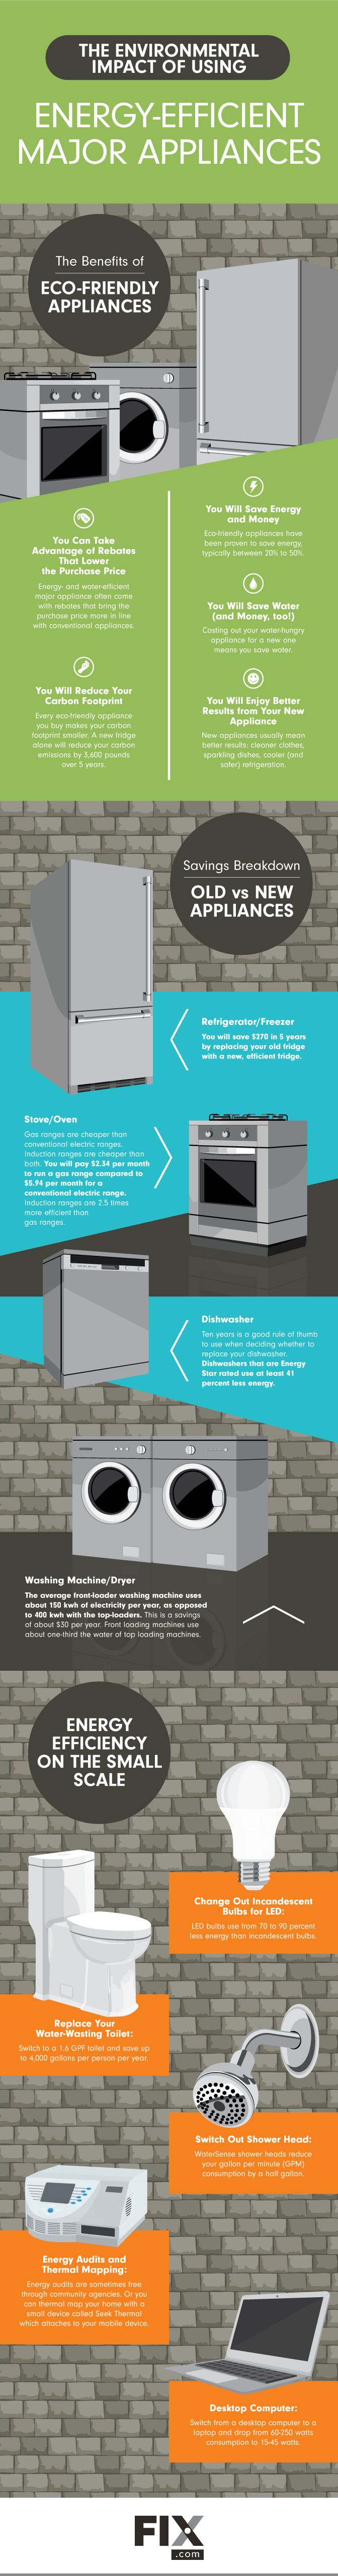 The Environmental Impact of Using Energy-Efficient Major Appliances #infographic